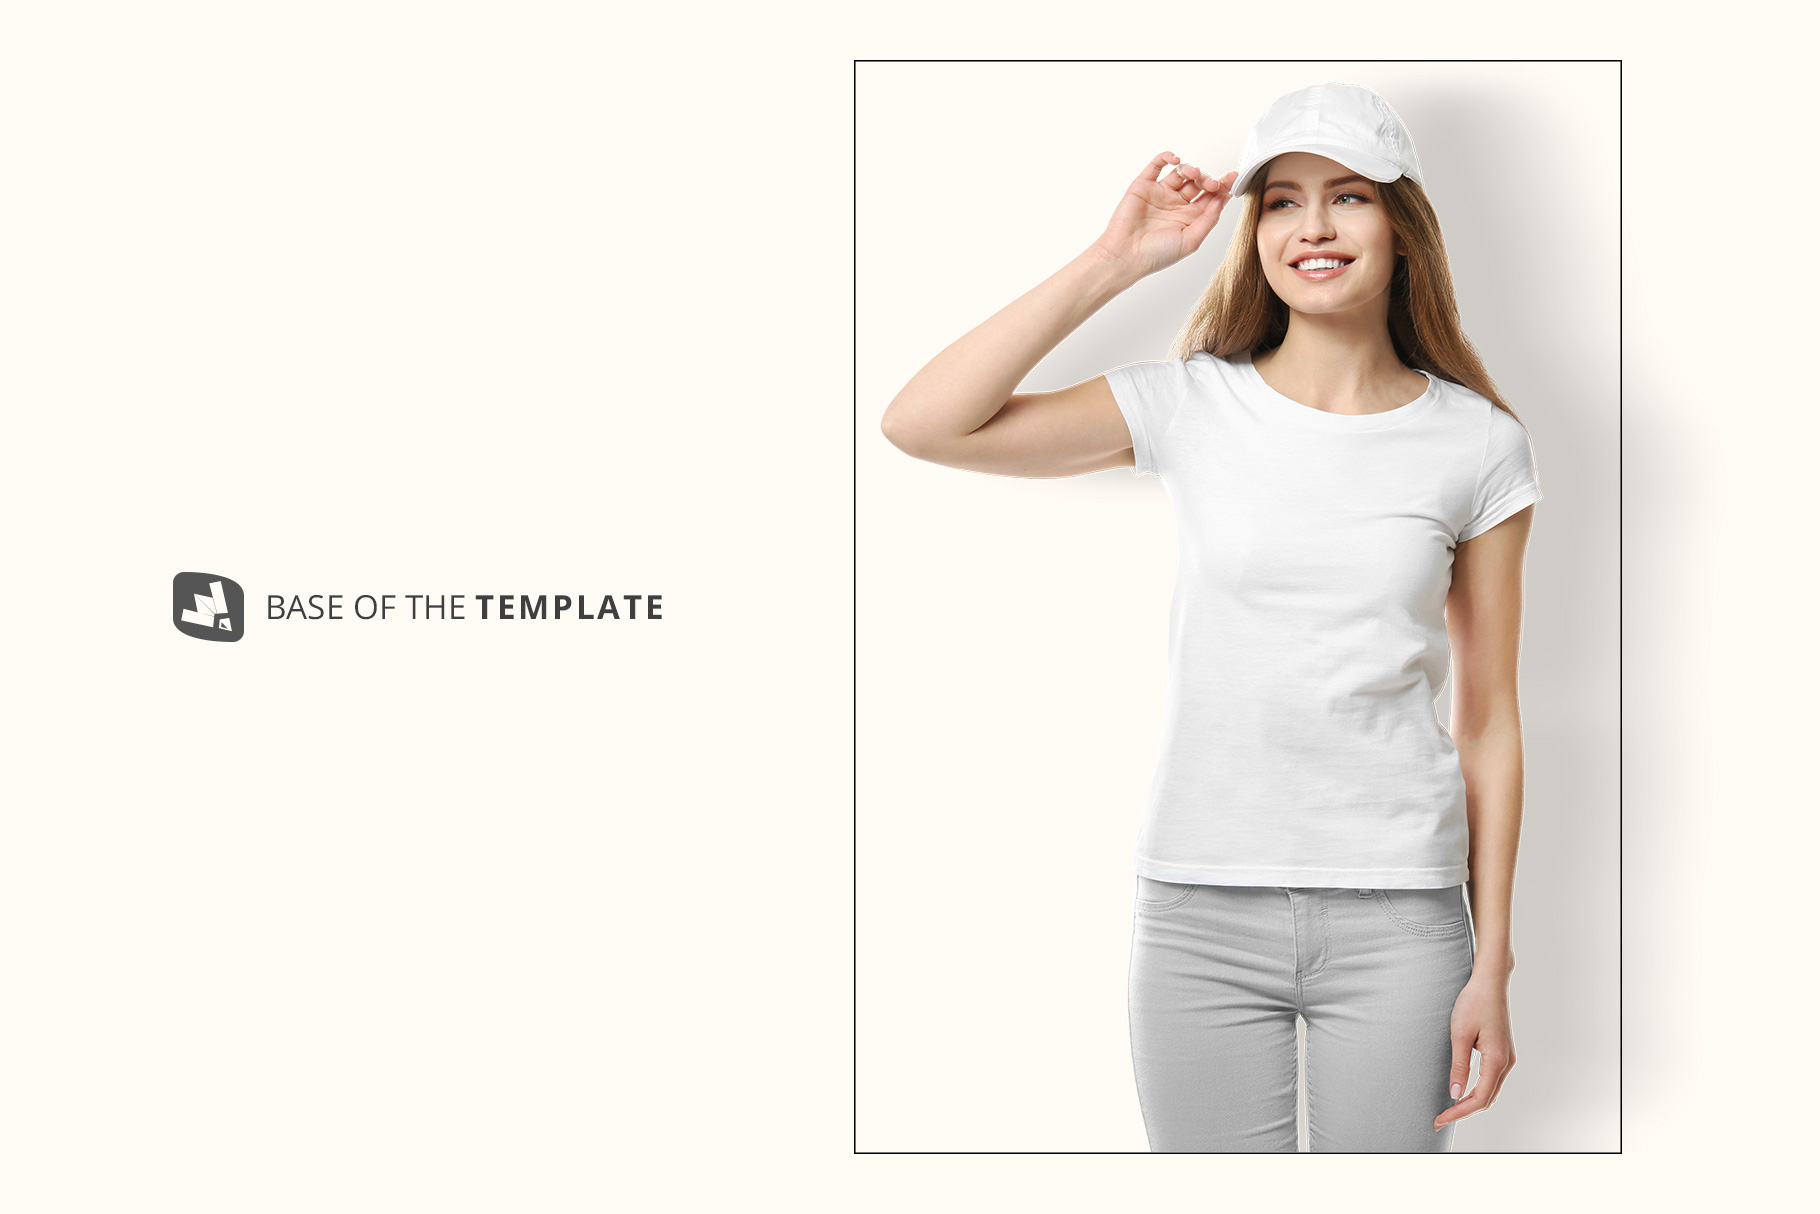 base image of the women's tshirt with cap mockup